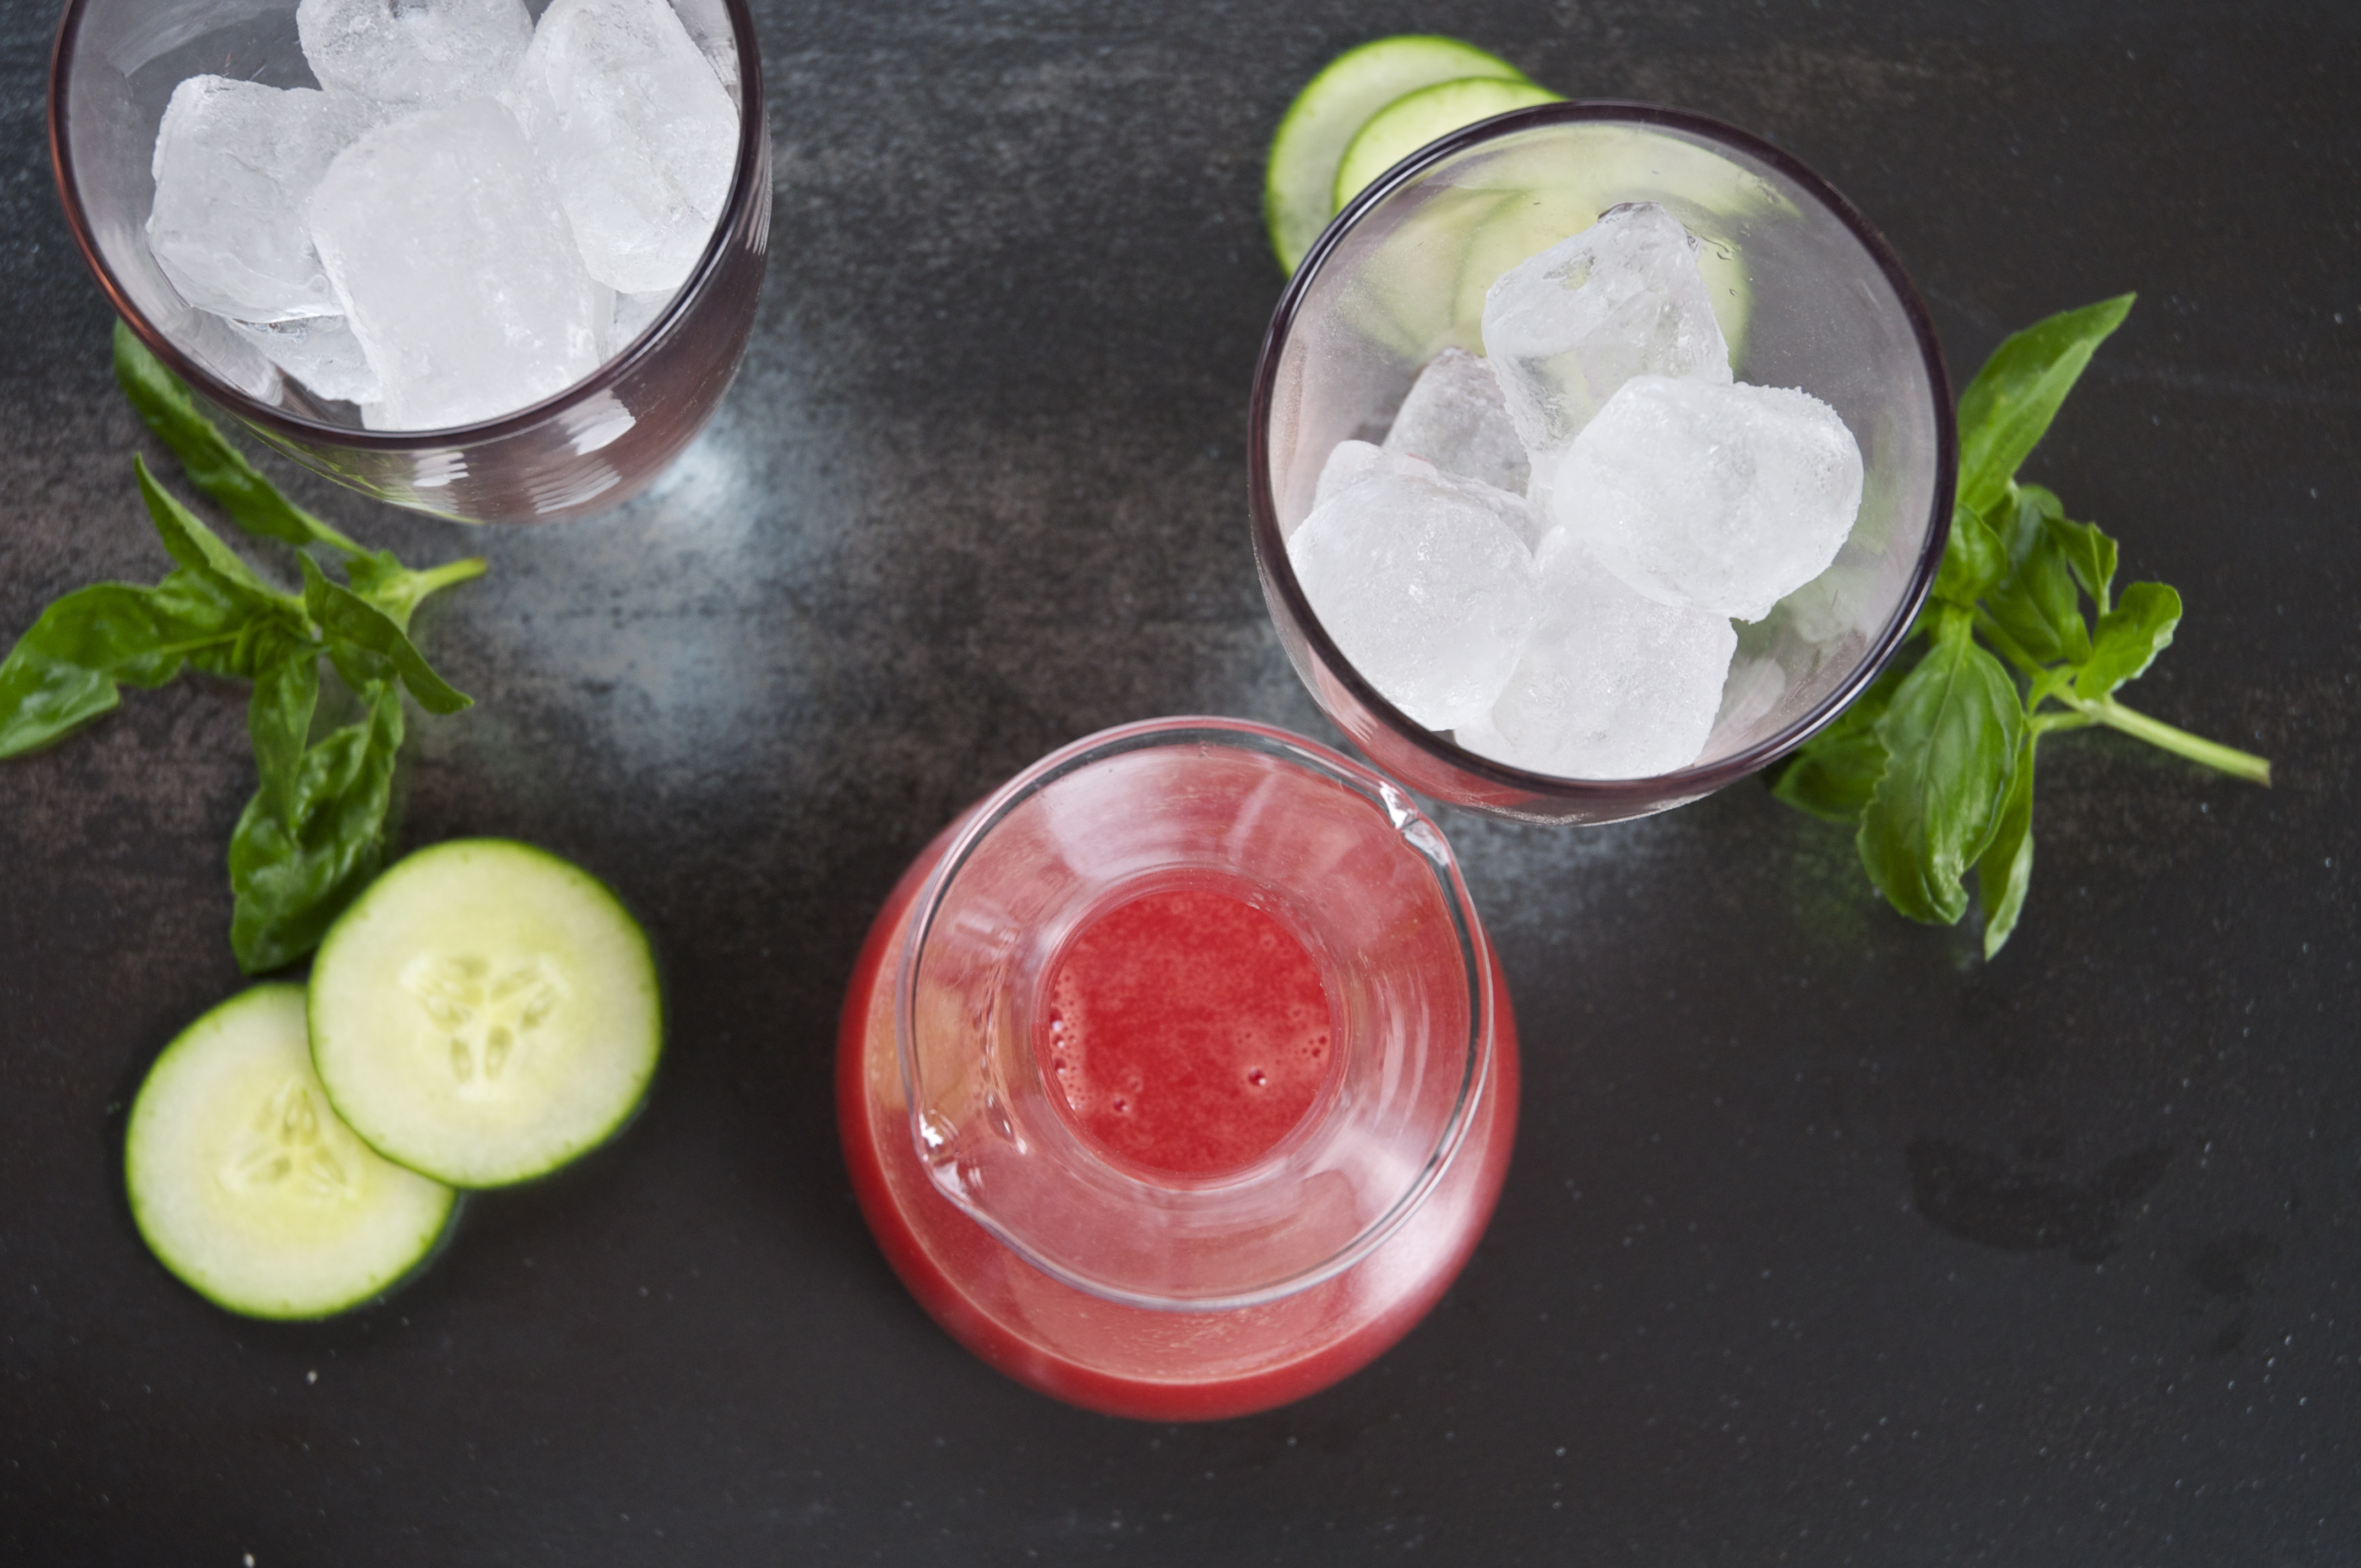 watermelon + basil + cucumber + gin cocktail | holly & flora